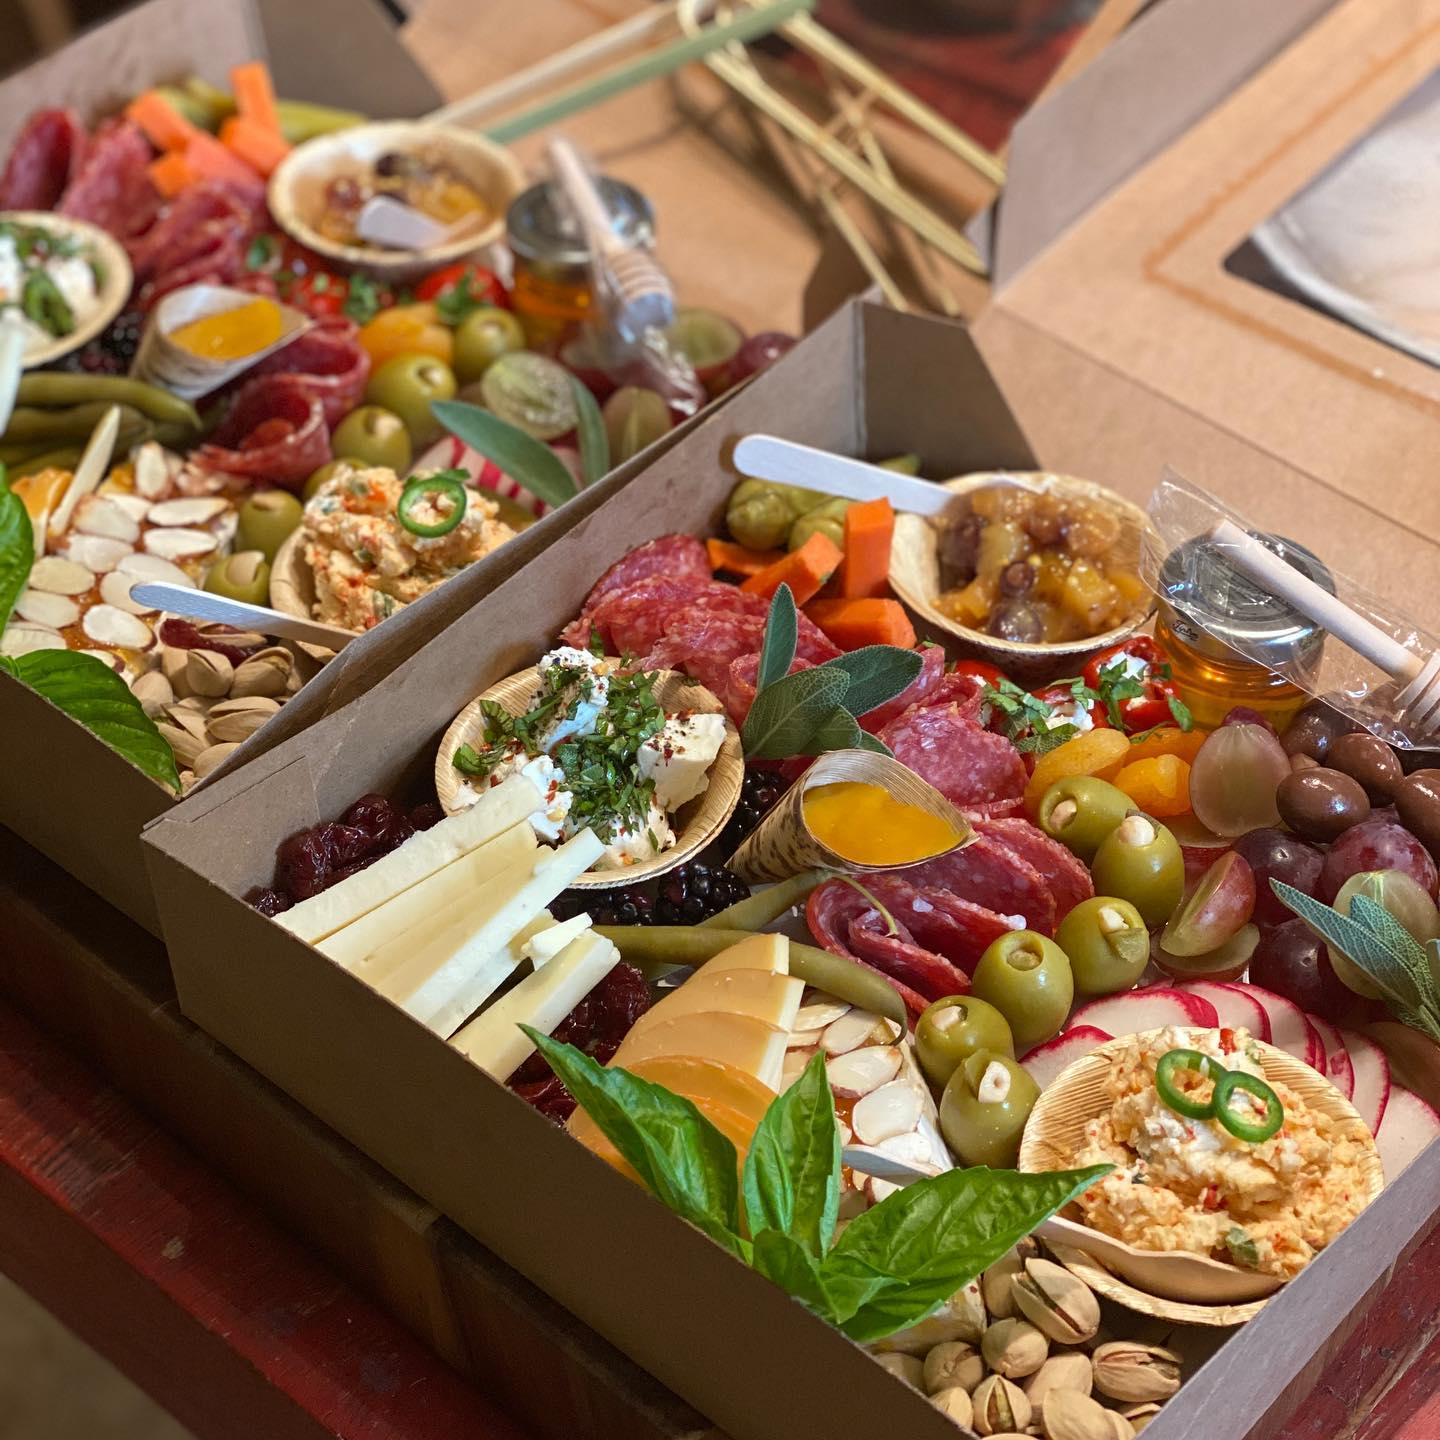 two charcuterie boards with assorted meats, cheeses, fruits, vegetables, crackers and nuts in boxes